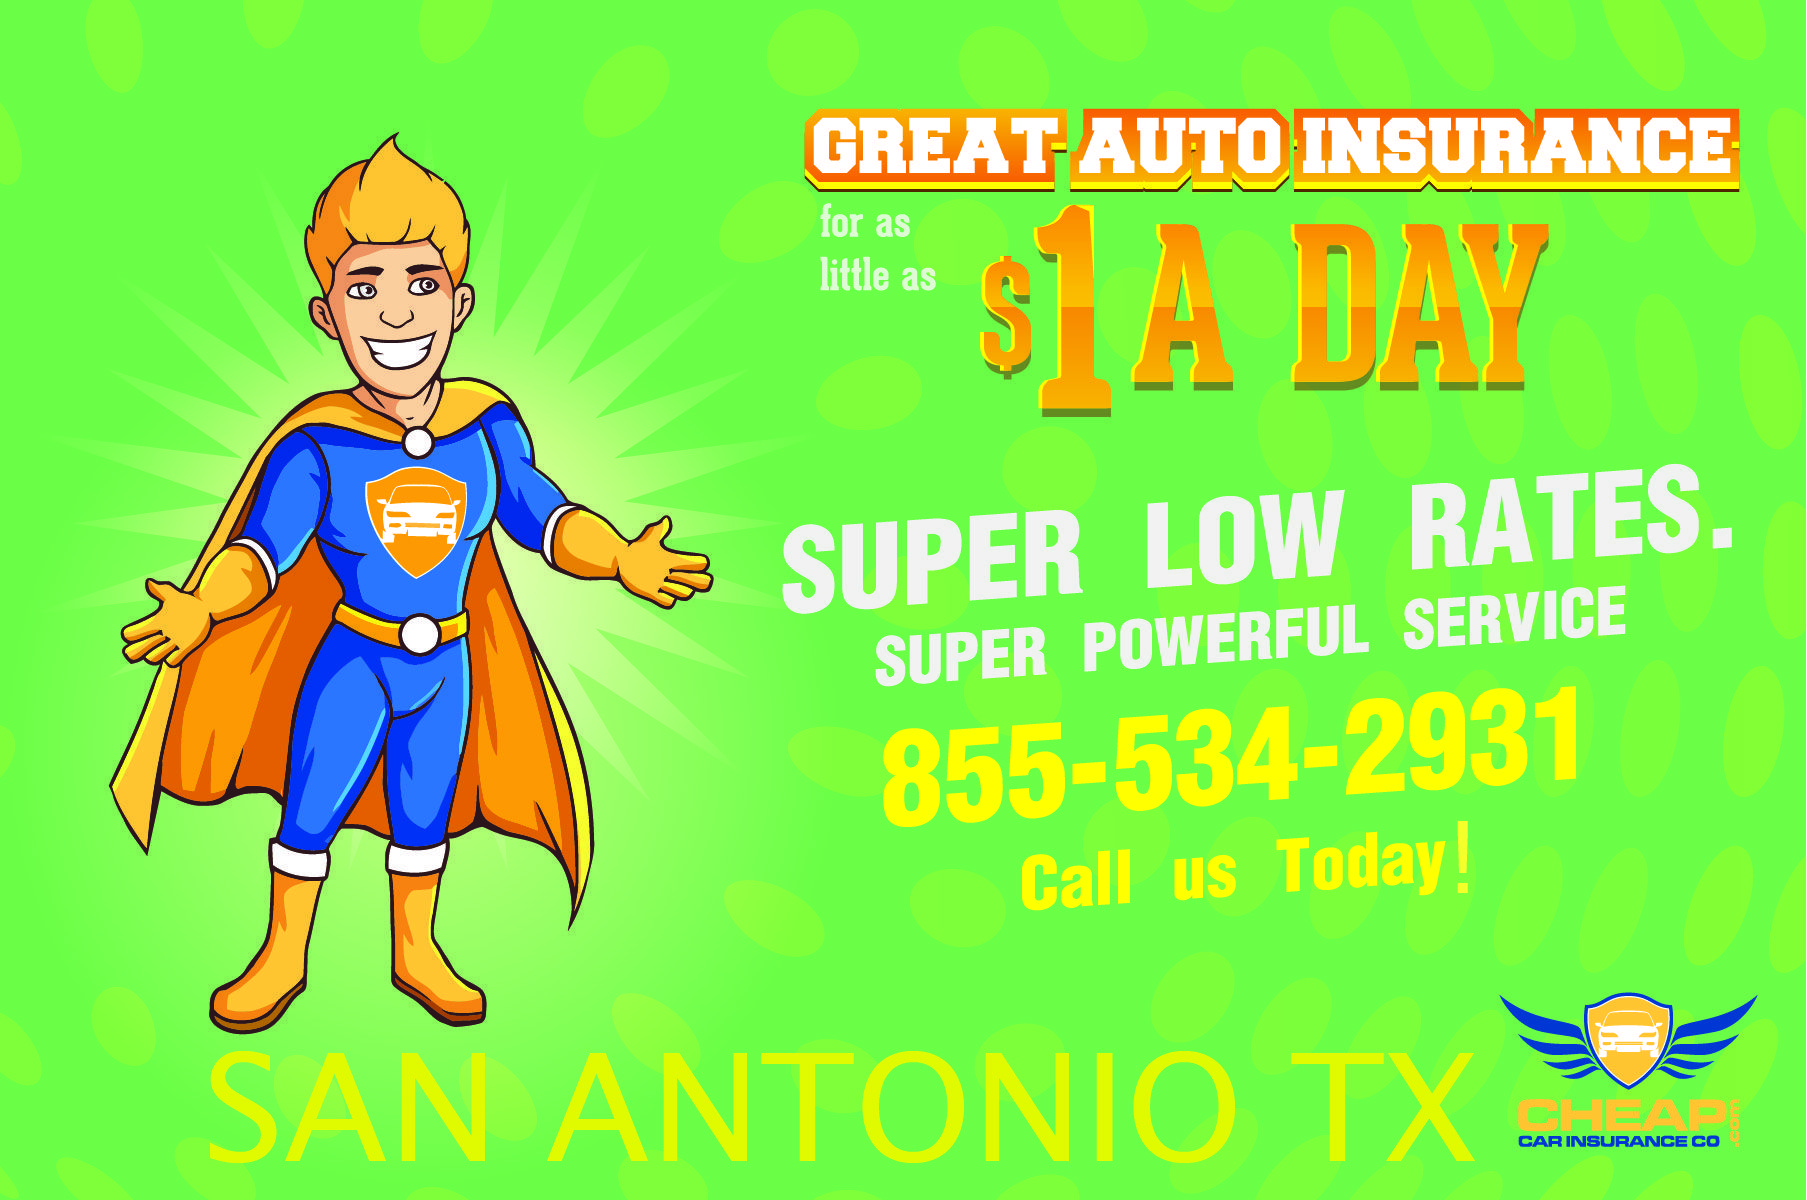 Affordable Auto Insurance In San Antonio Tx We Offer The Best In